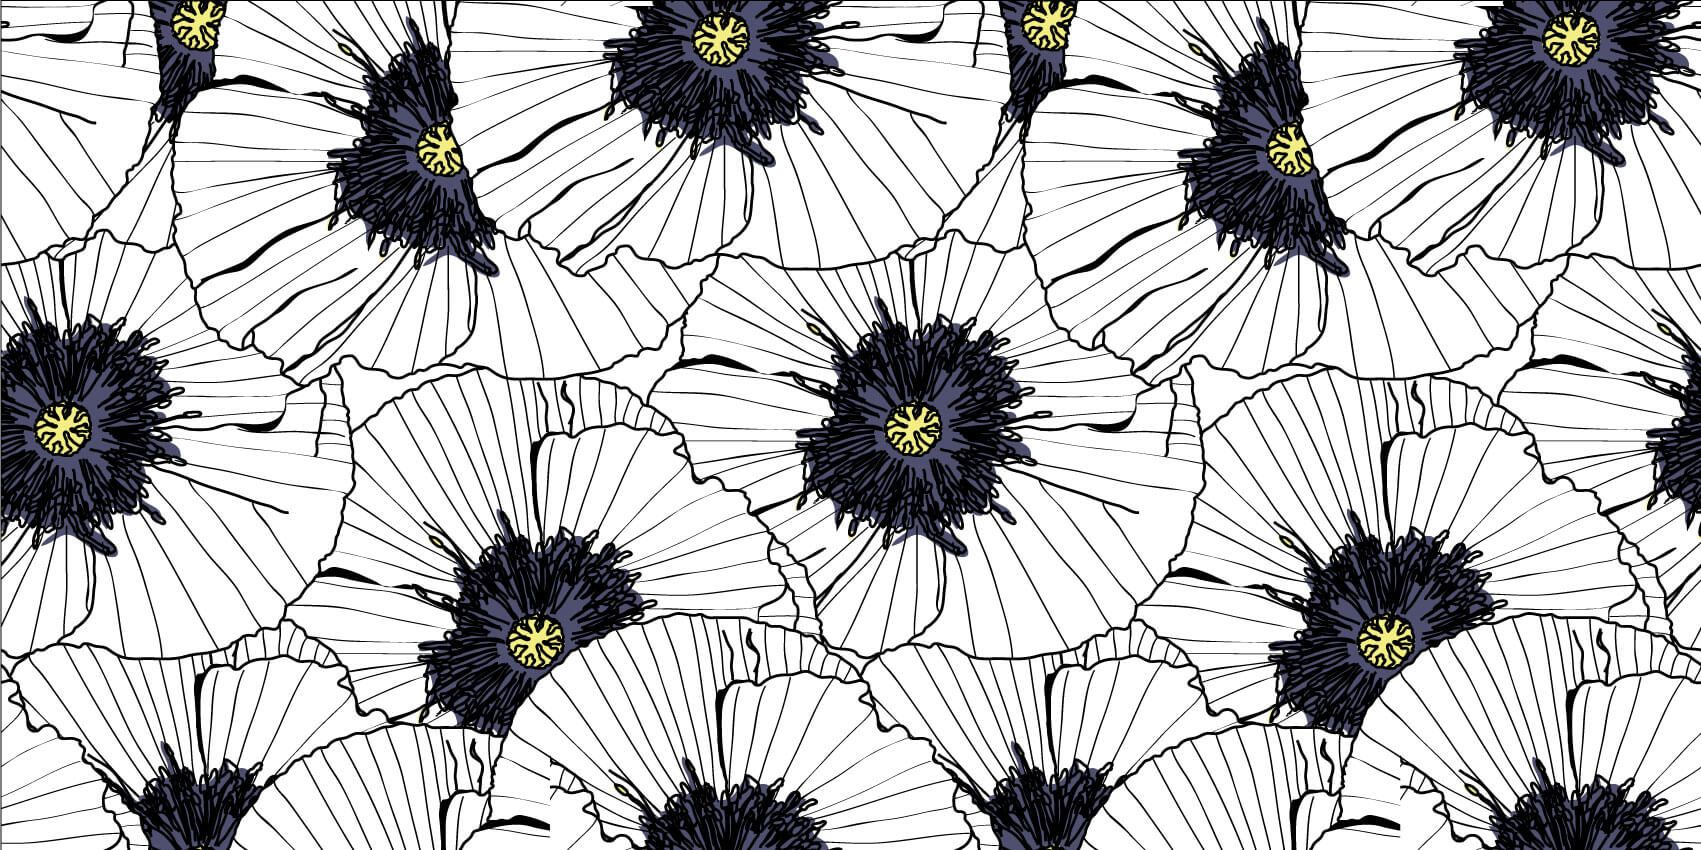 Patterns for Kidsroom - Graphic poppies - Bedroom